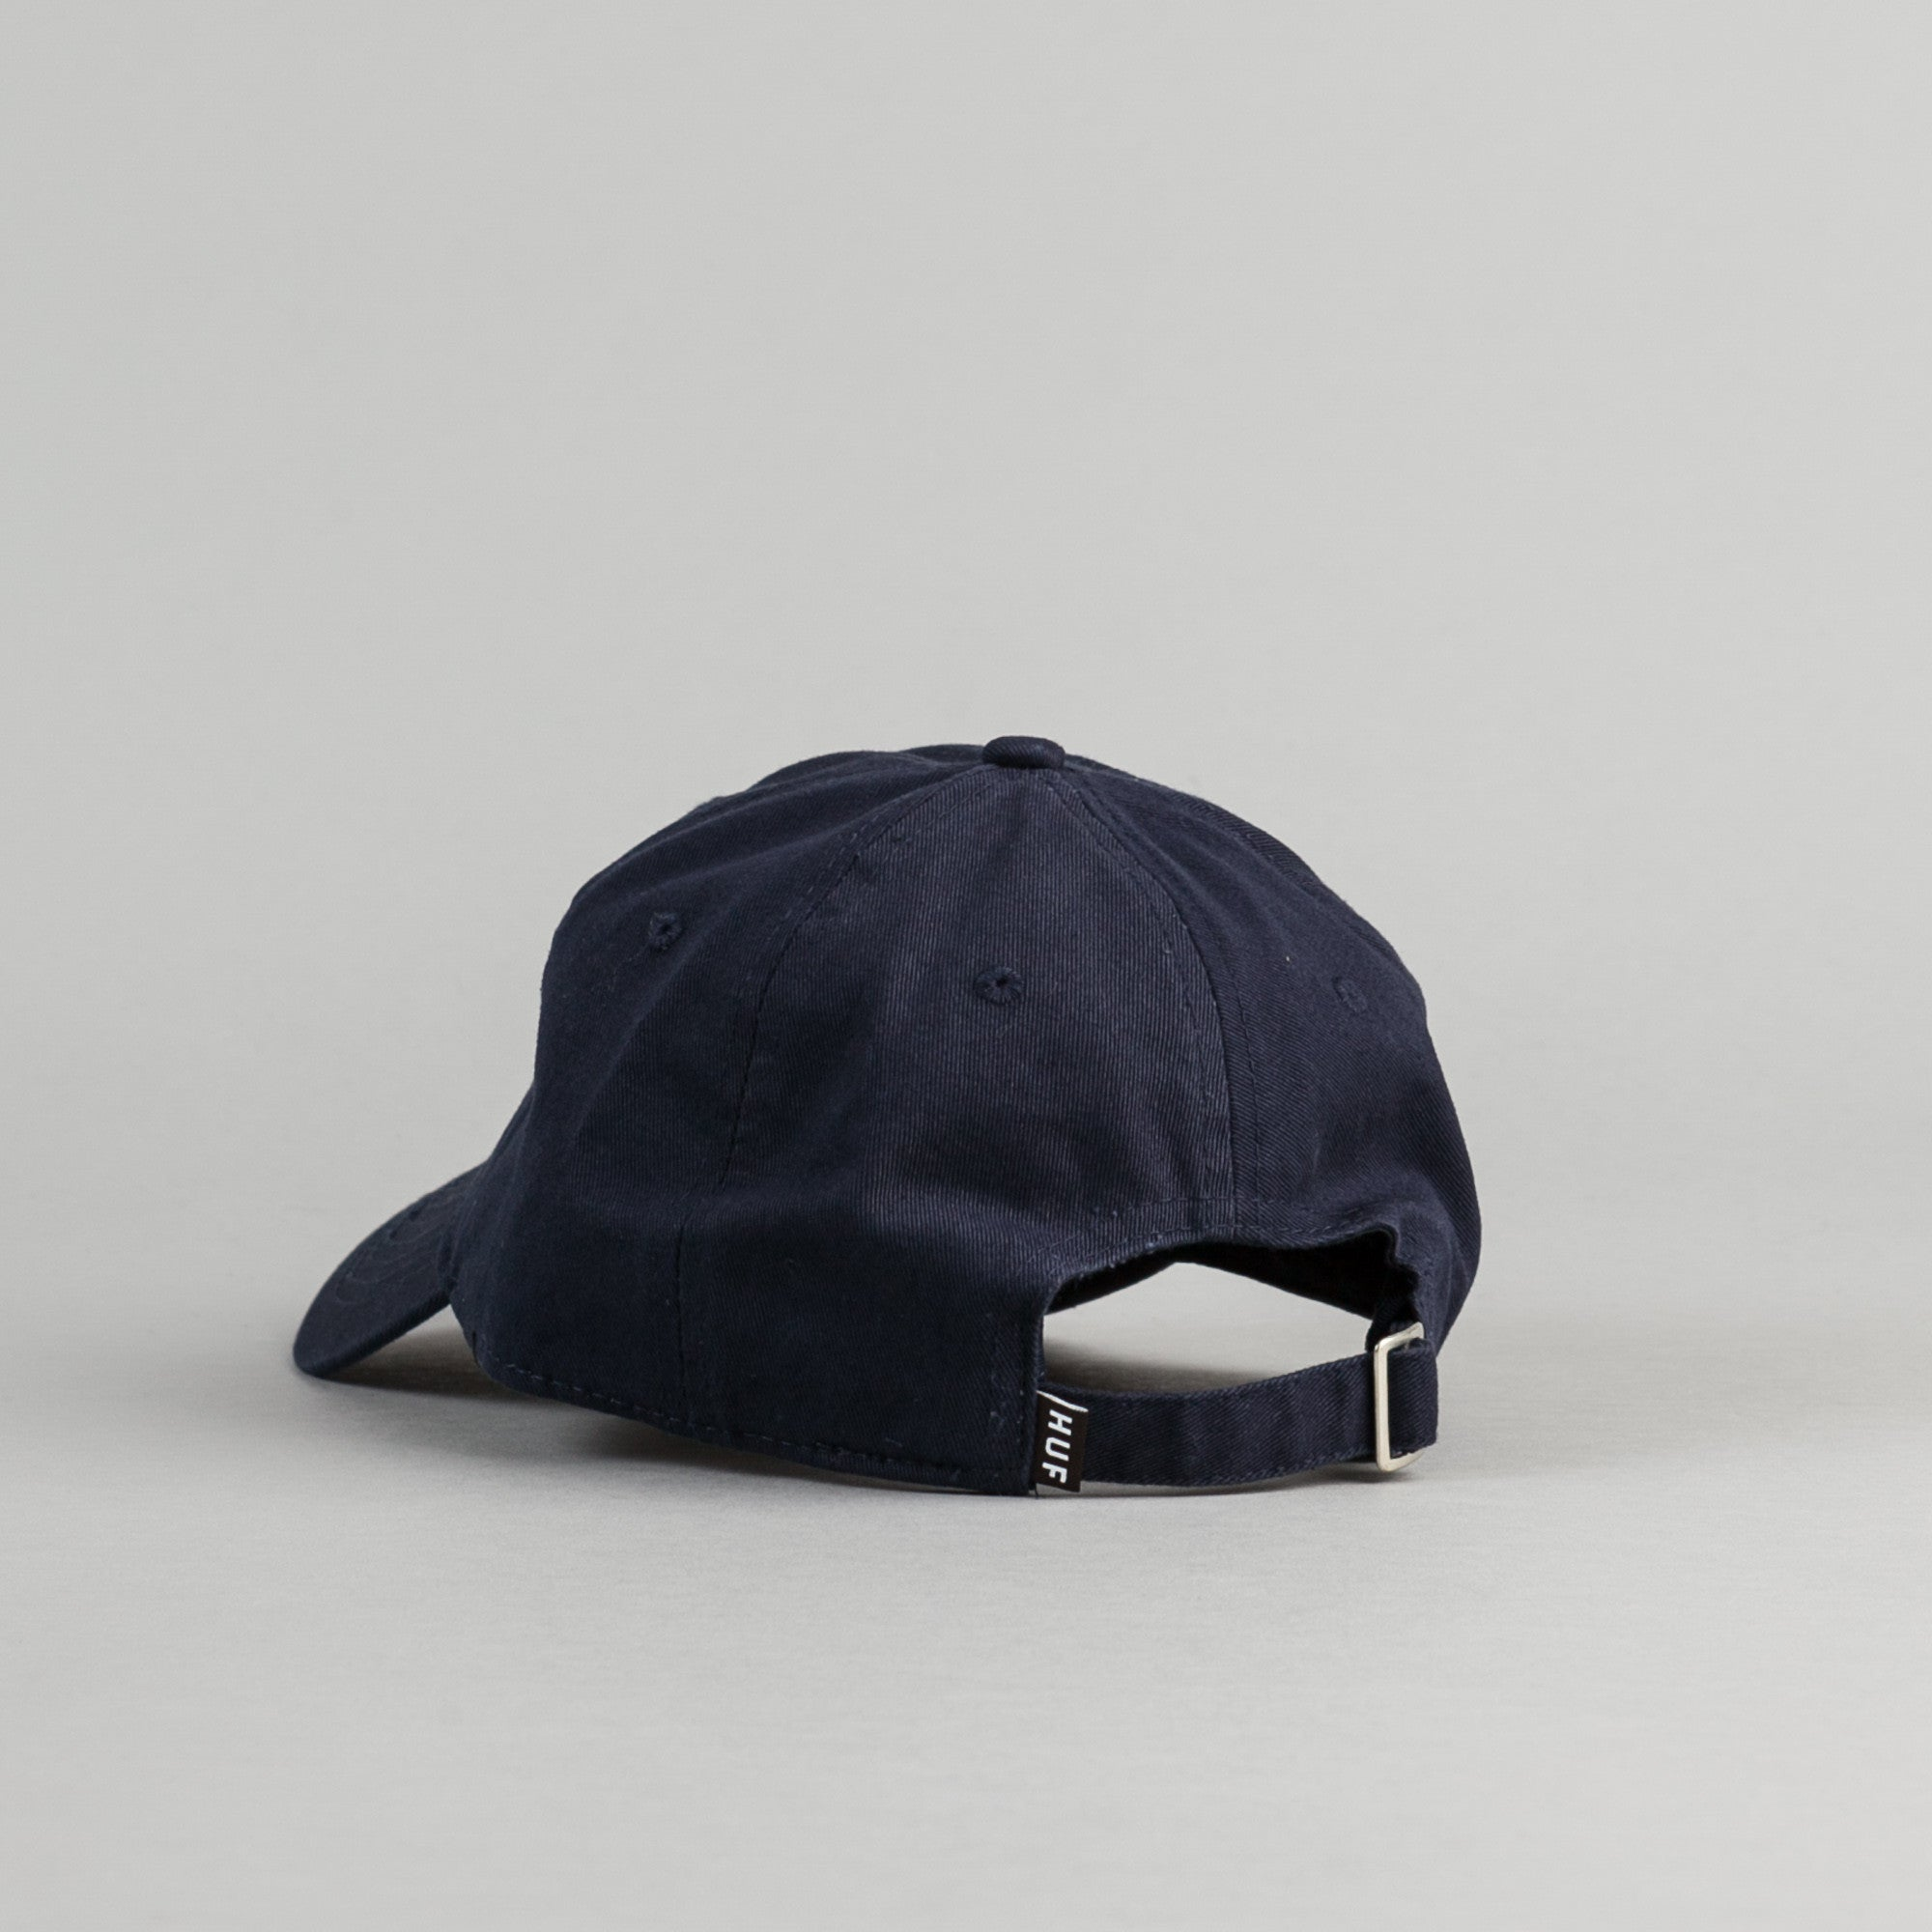 HUF Domestic Worldwide Cap - Navy / Gold